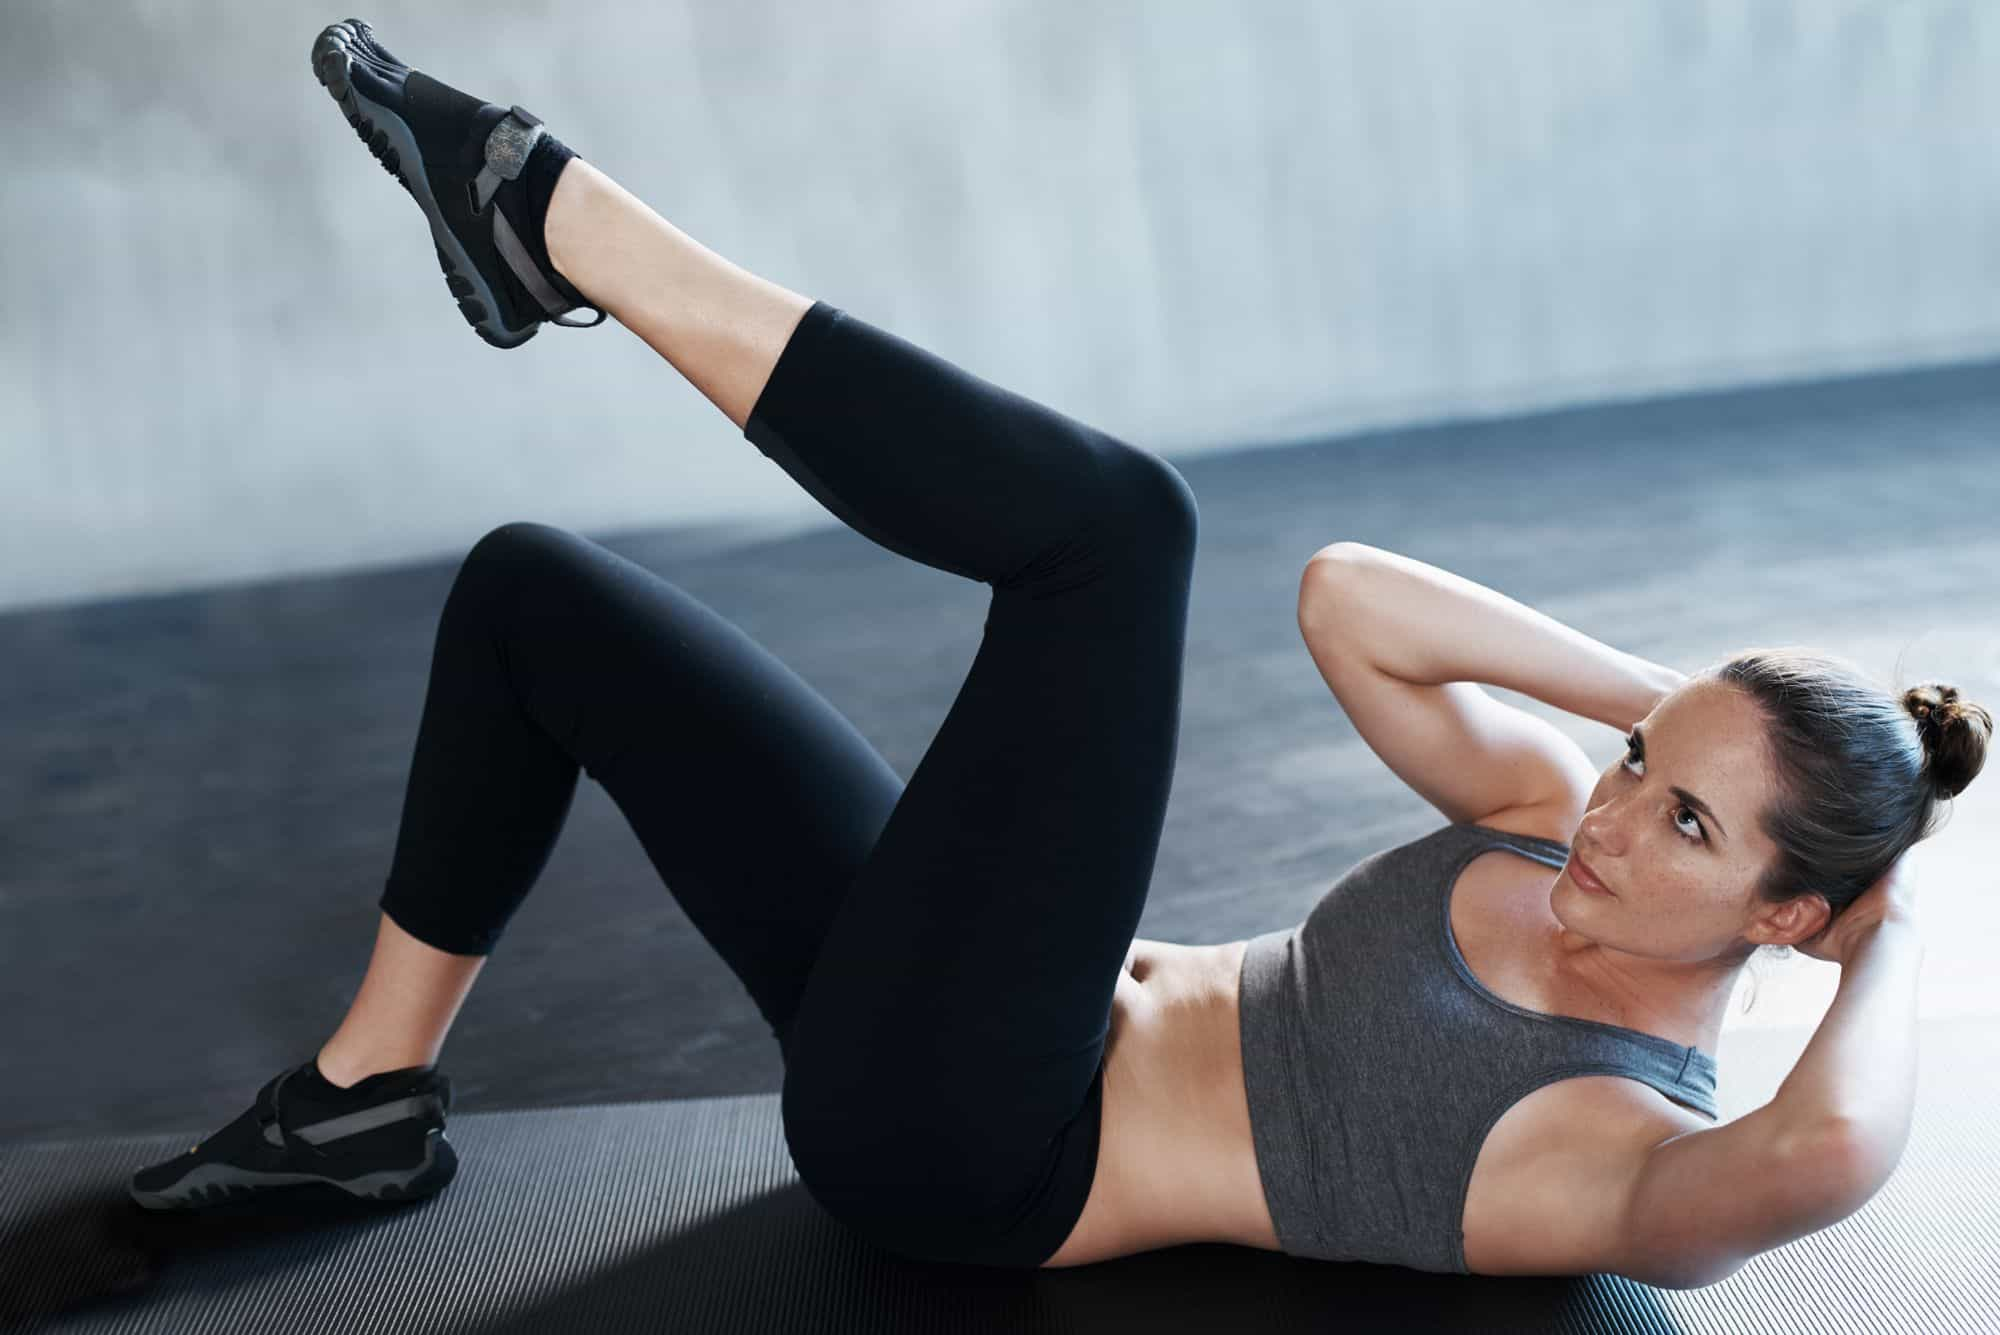 The Best Home Workout Routines Of 2021